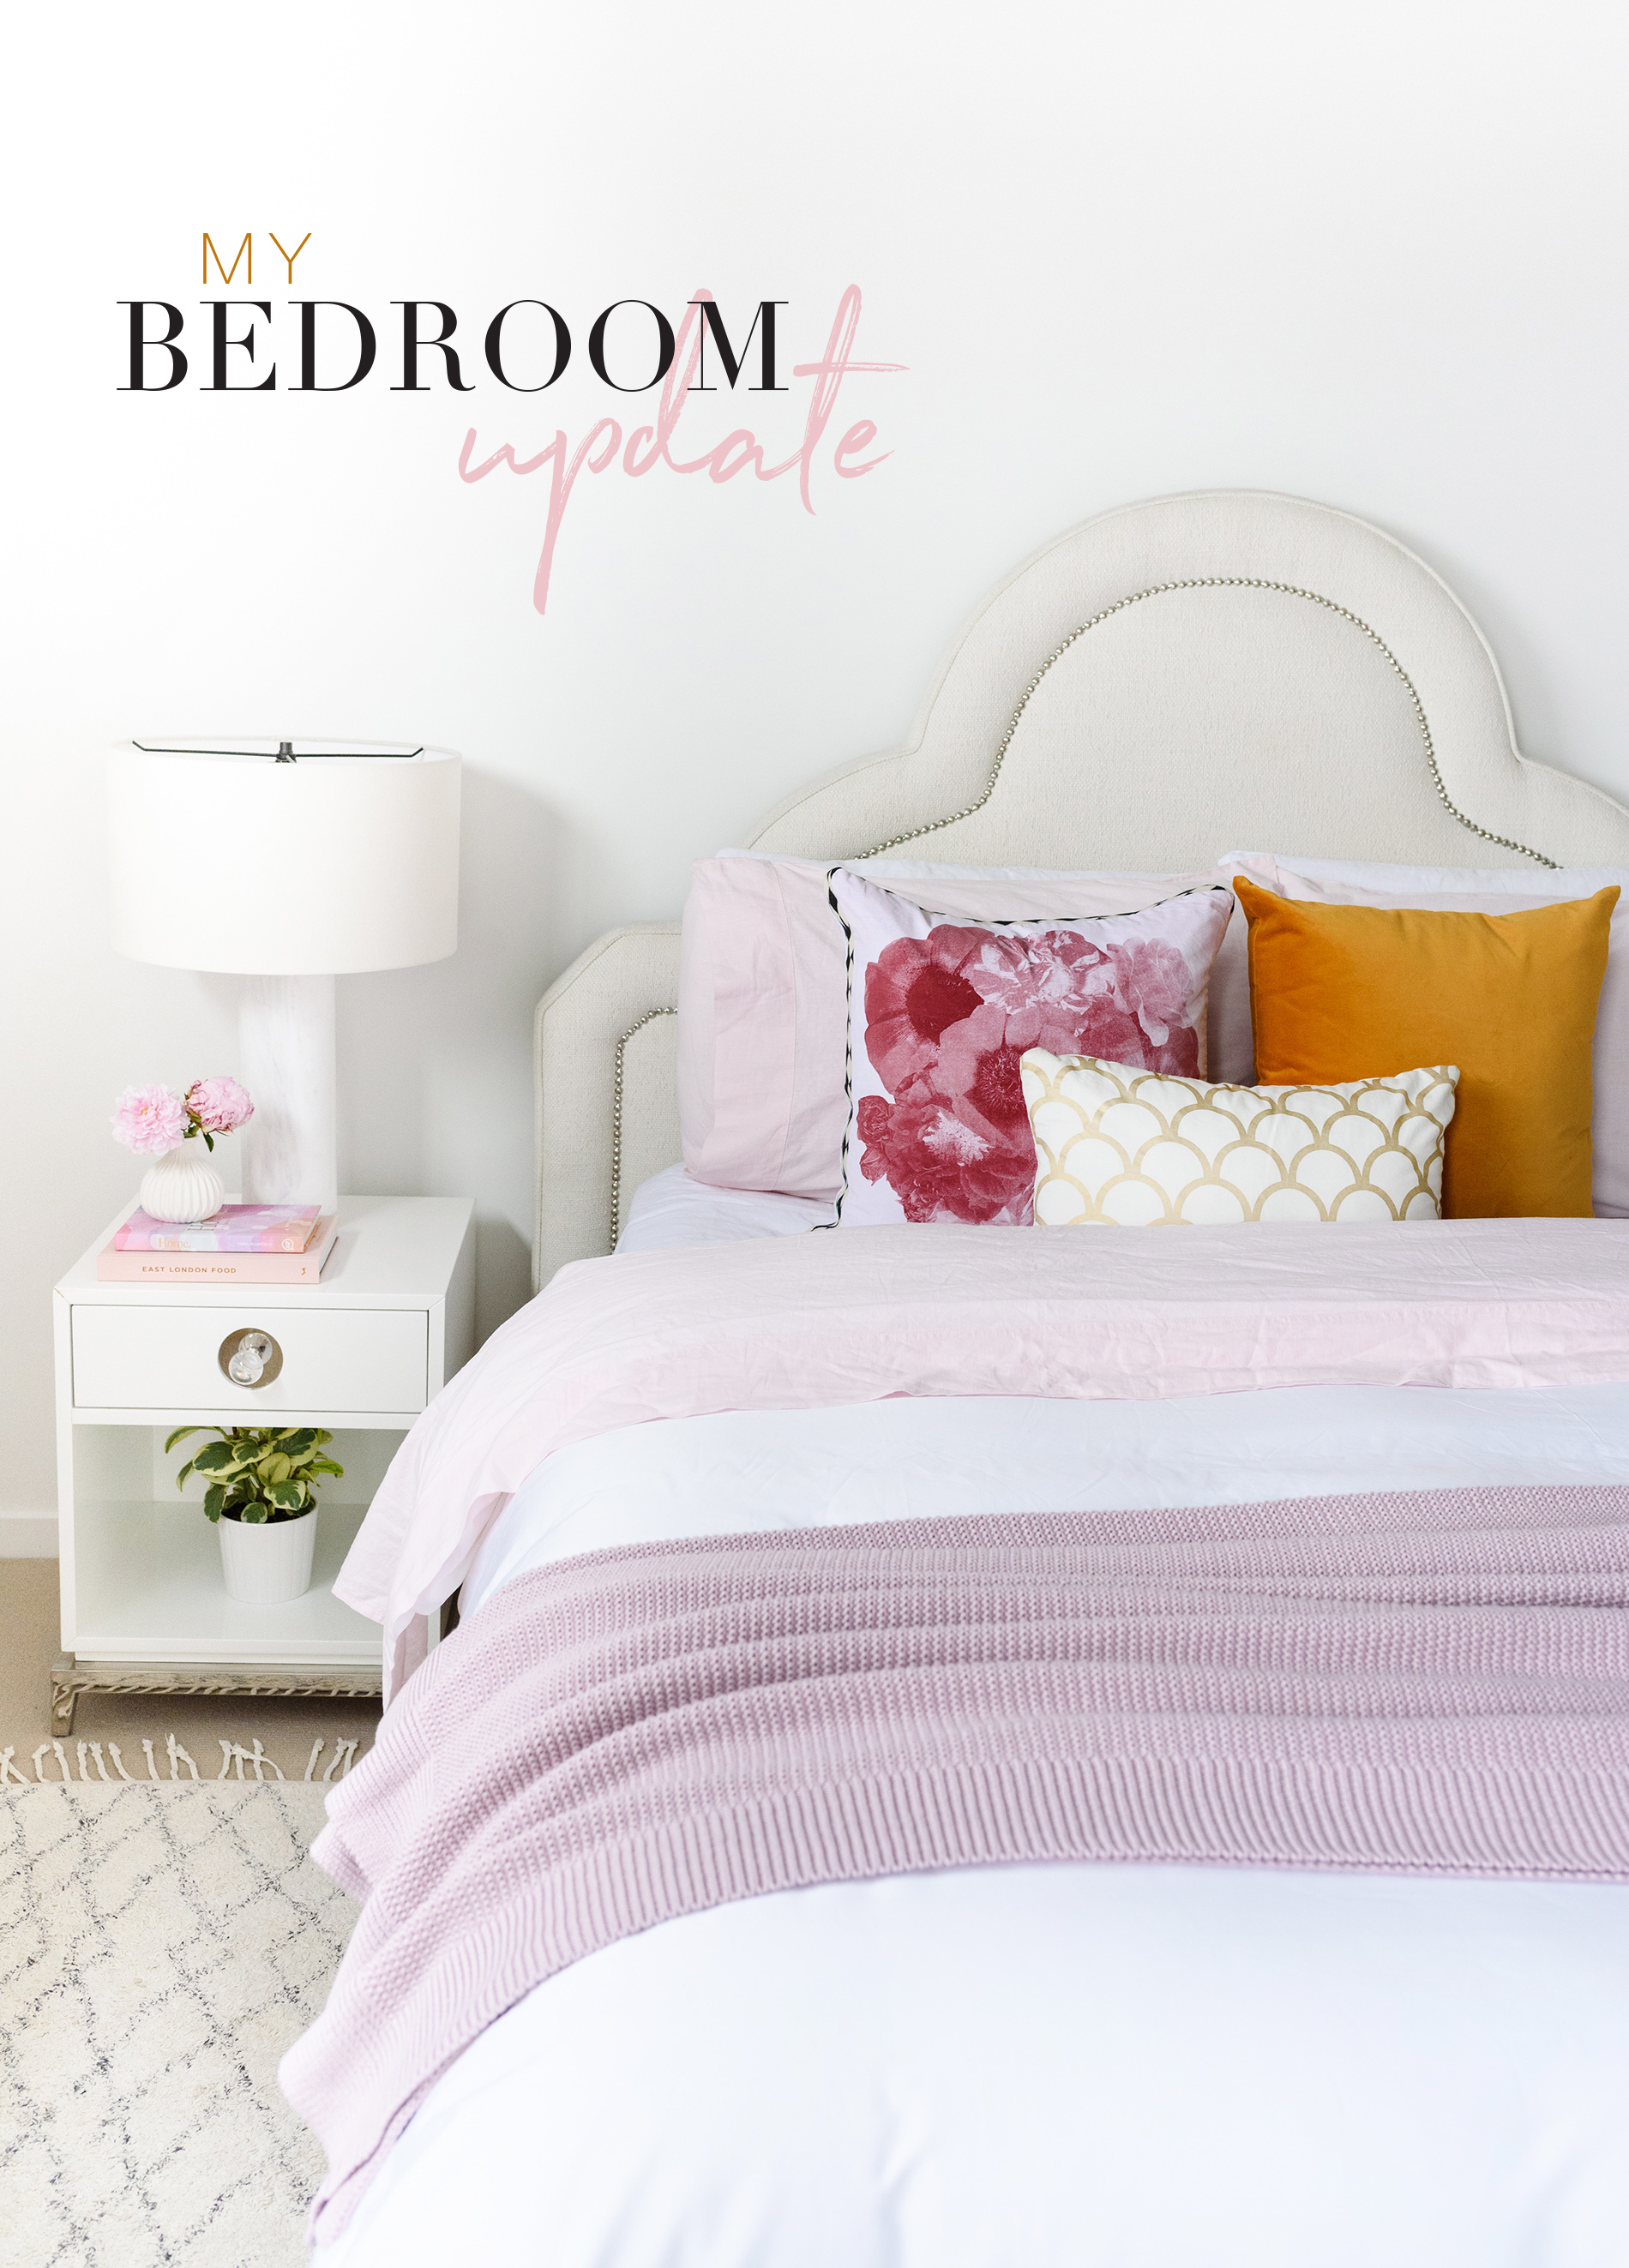 UPDATEadore_home_magazine_bedroom_makeover_bedding_canningvale_linen_fresh_sheets_pastel_pink_lilac copy.jpg